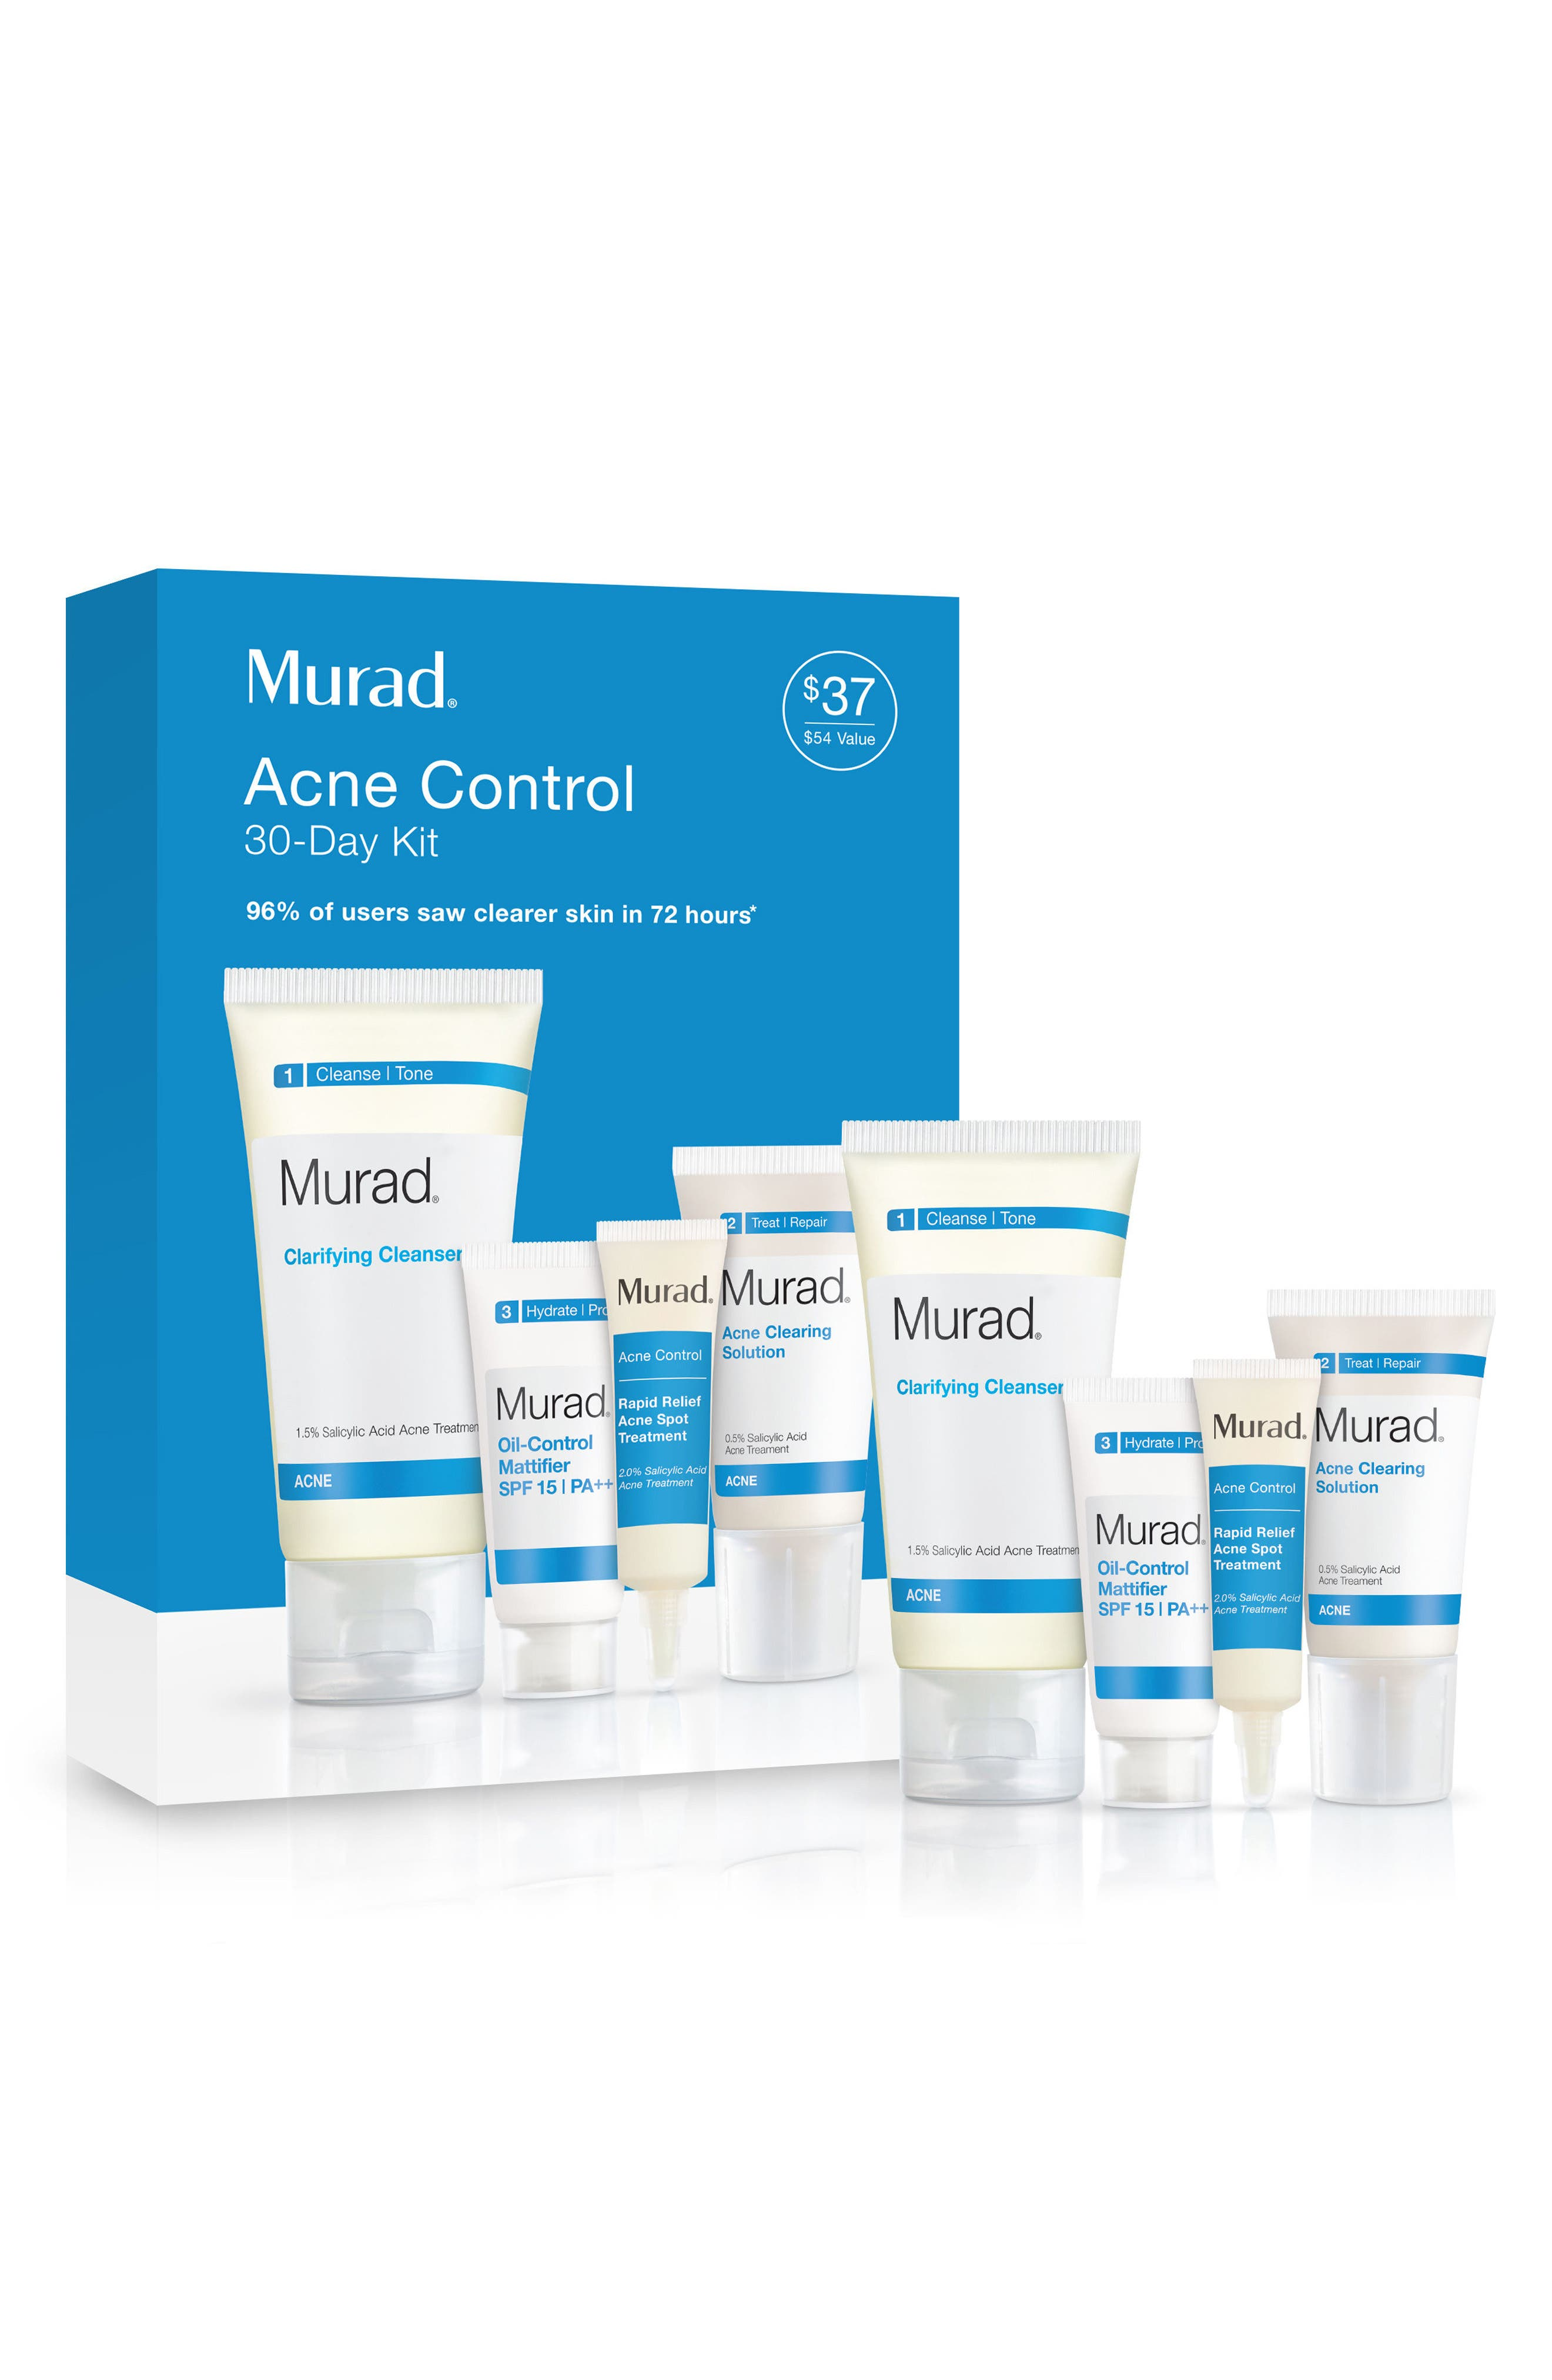 Murad® Acne Control 30-Day Kit ($54 Value)